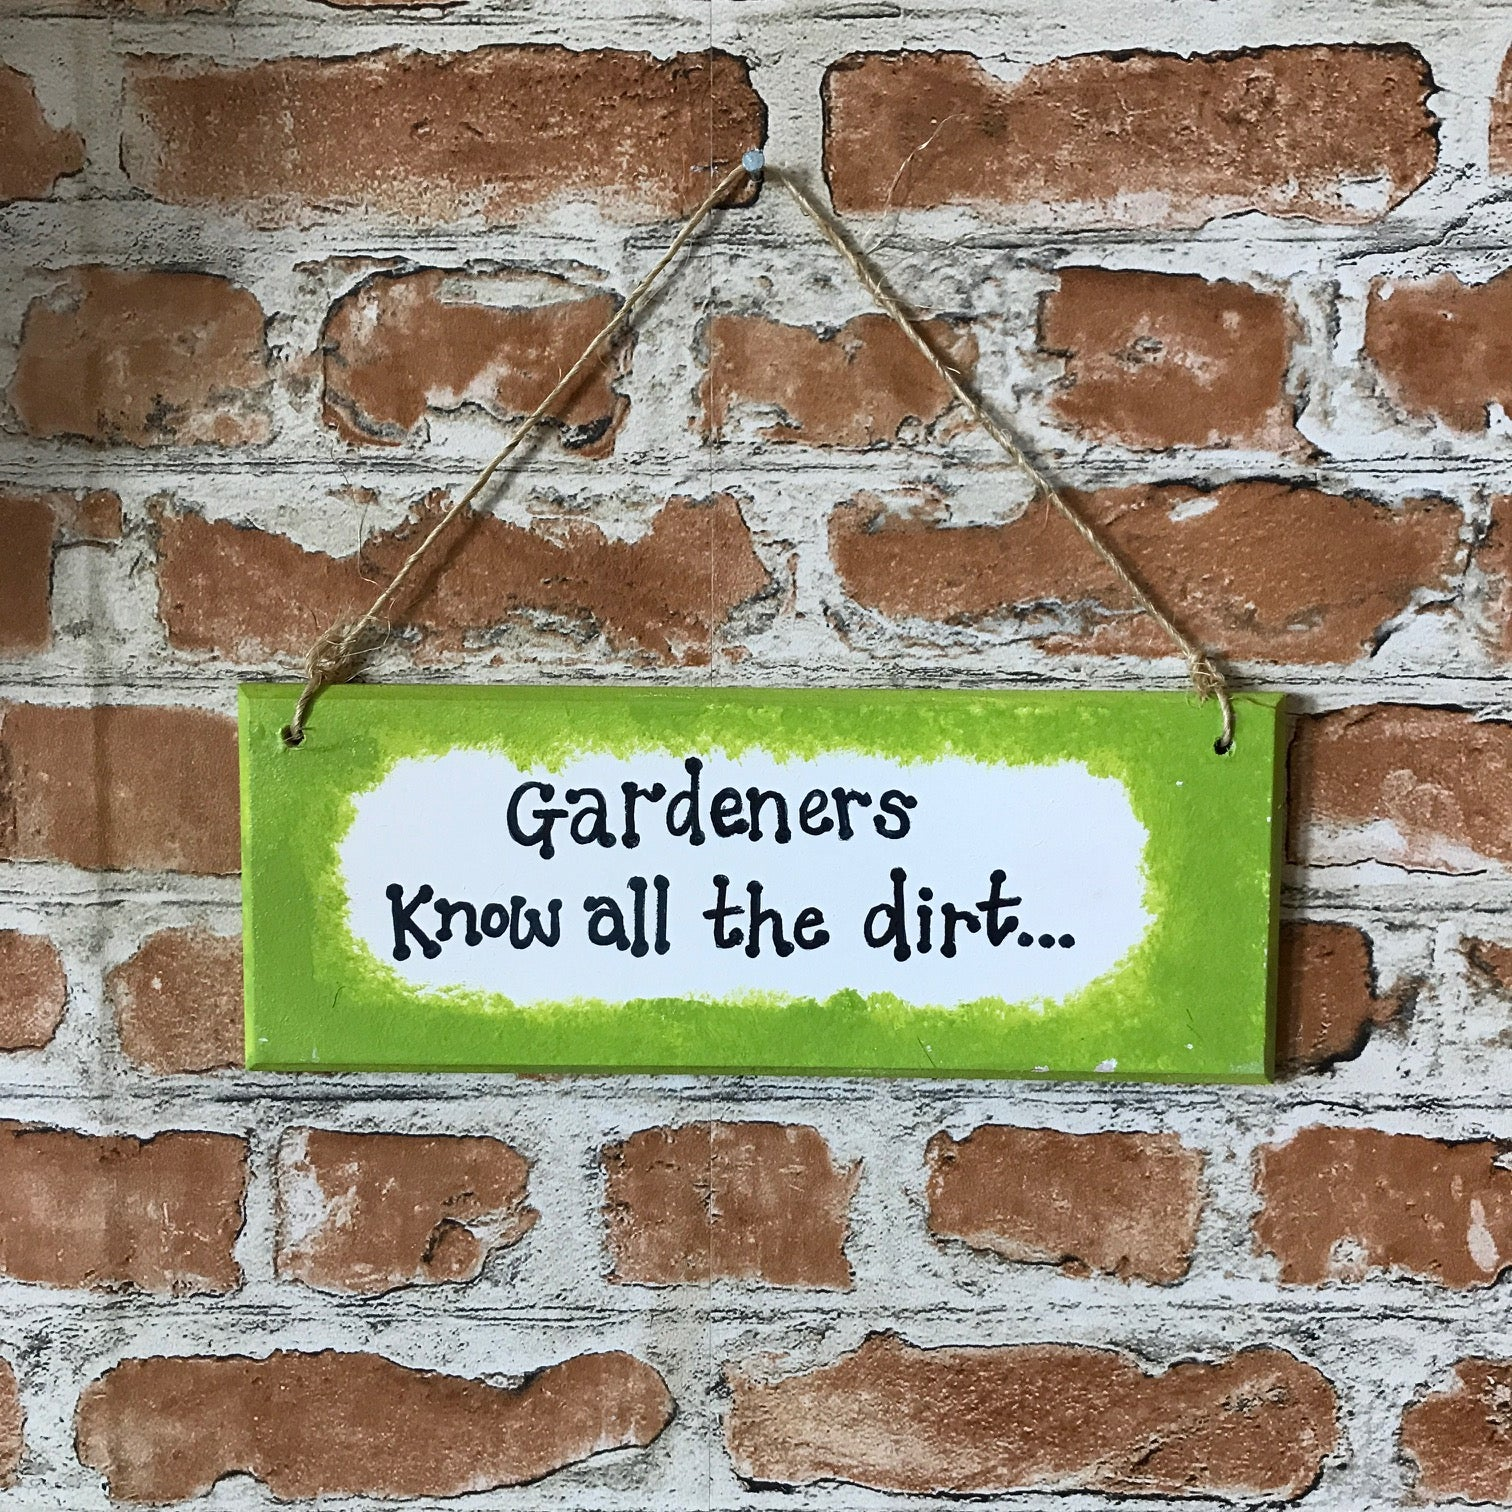 Gardeners know all the dirt - Handmade Wooden Plaque